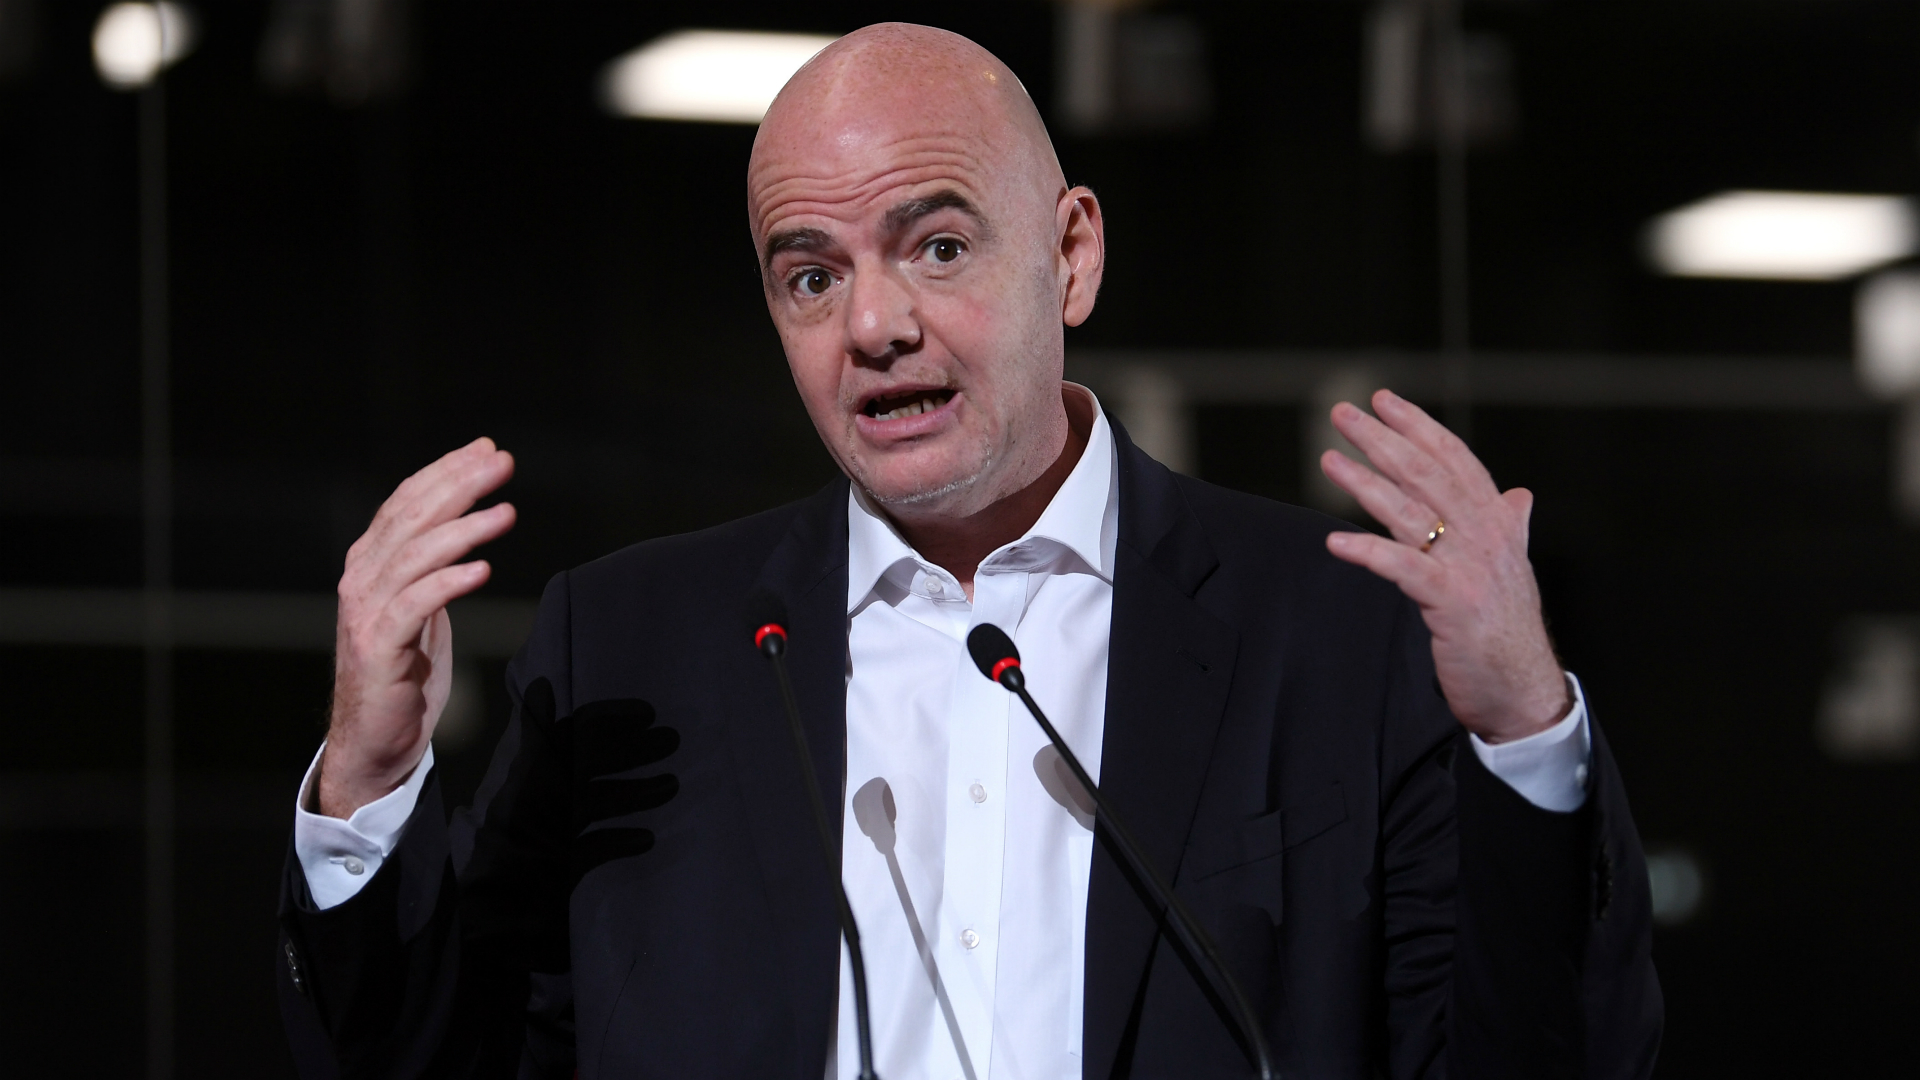 FIFA Boss Gianni Infantino Would Ban Players In 'European Super League'